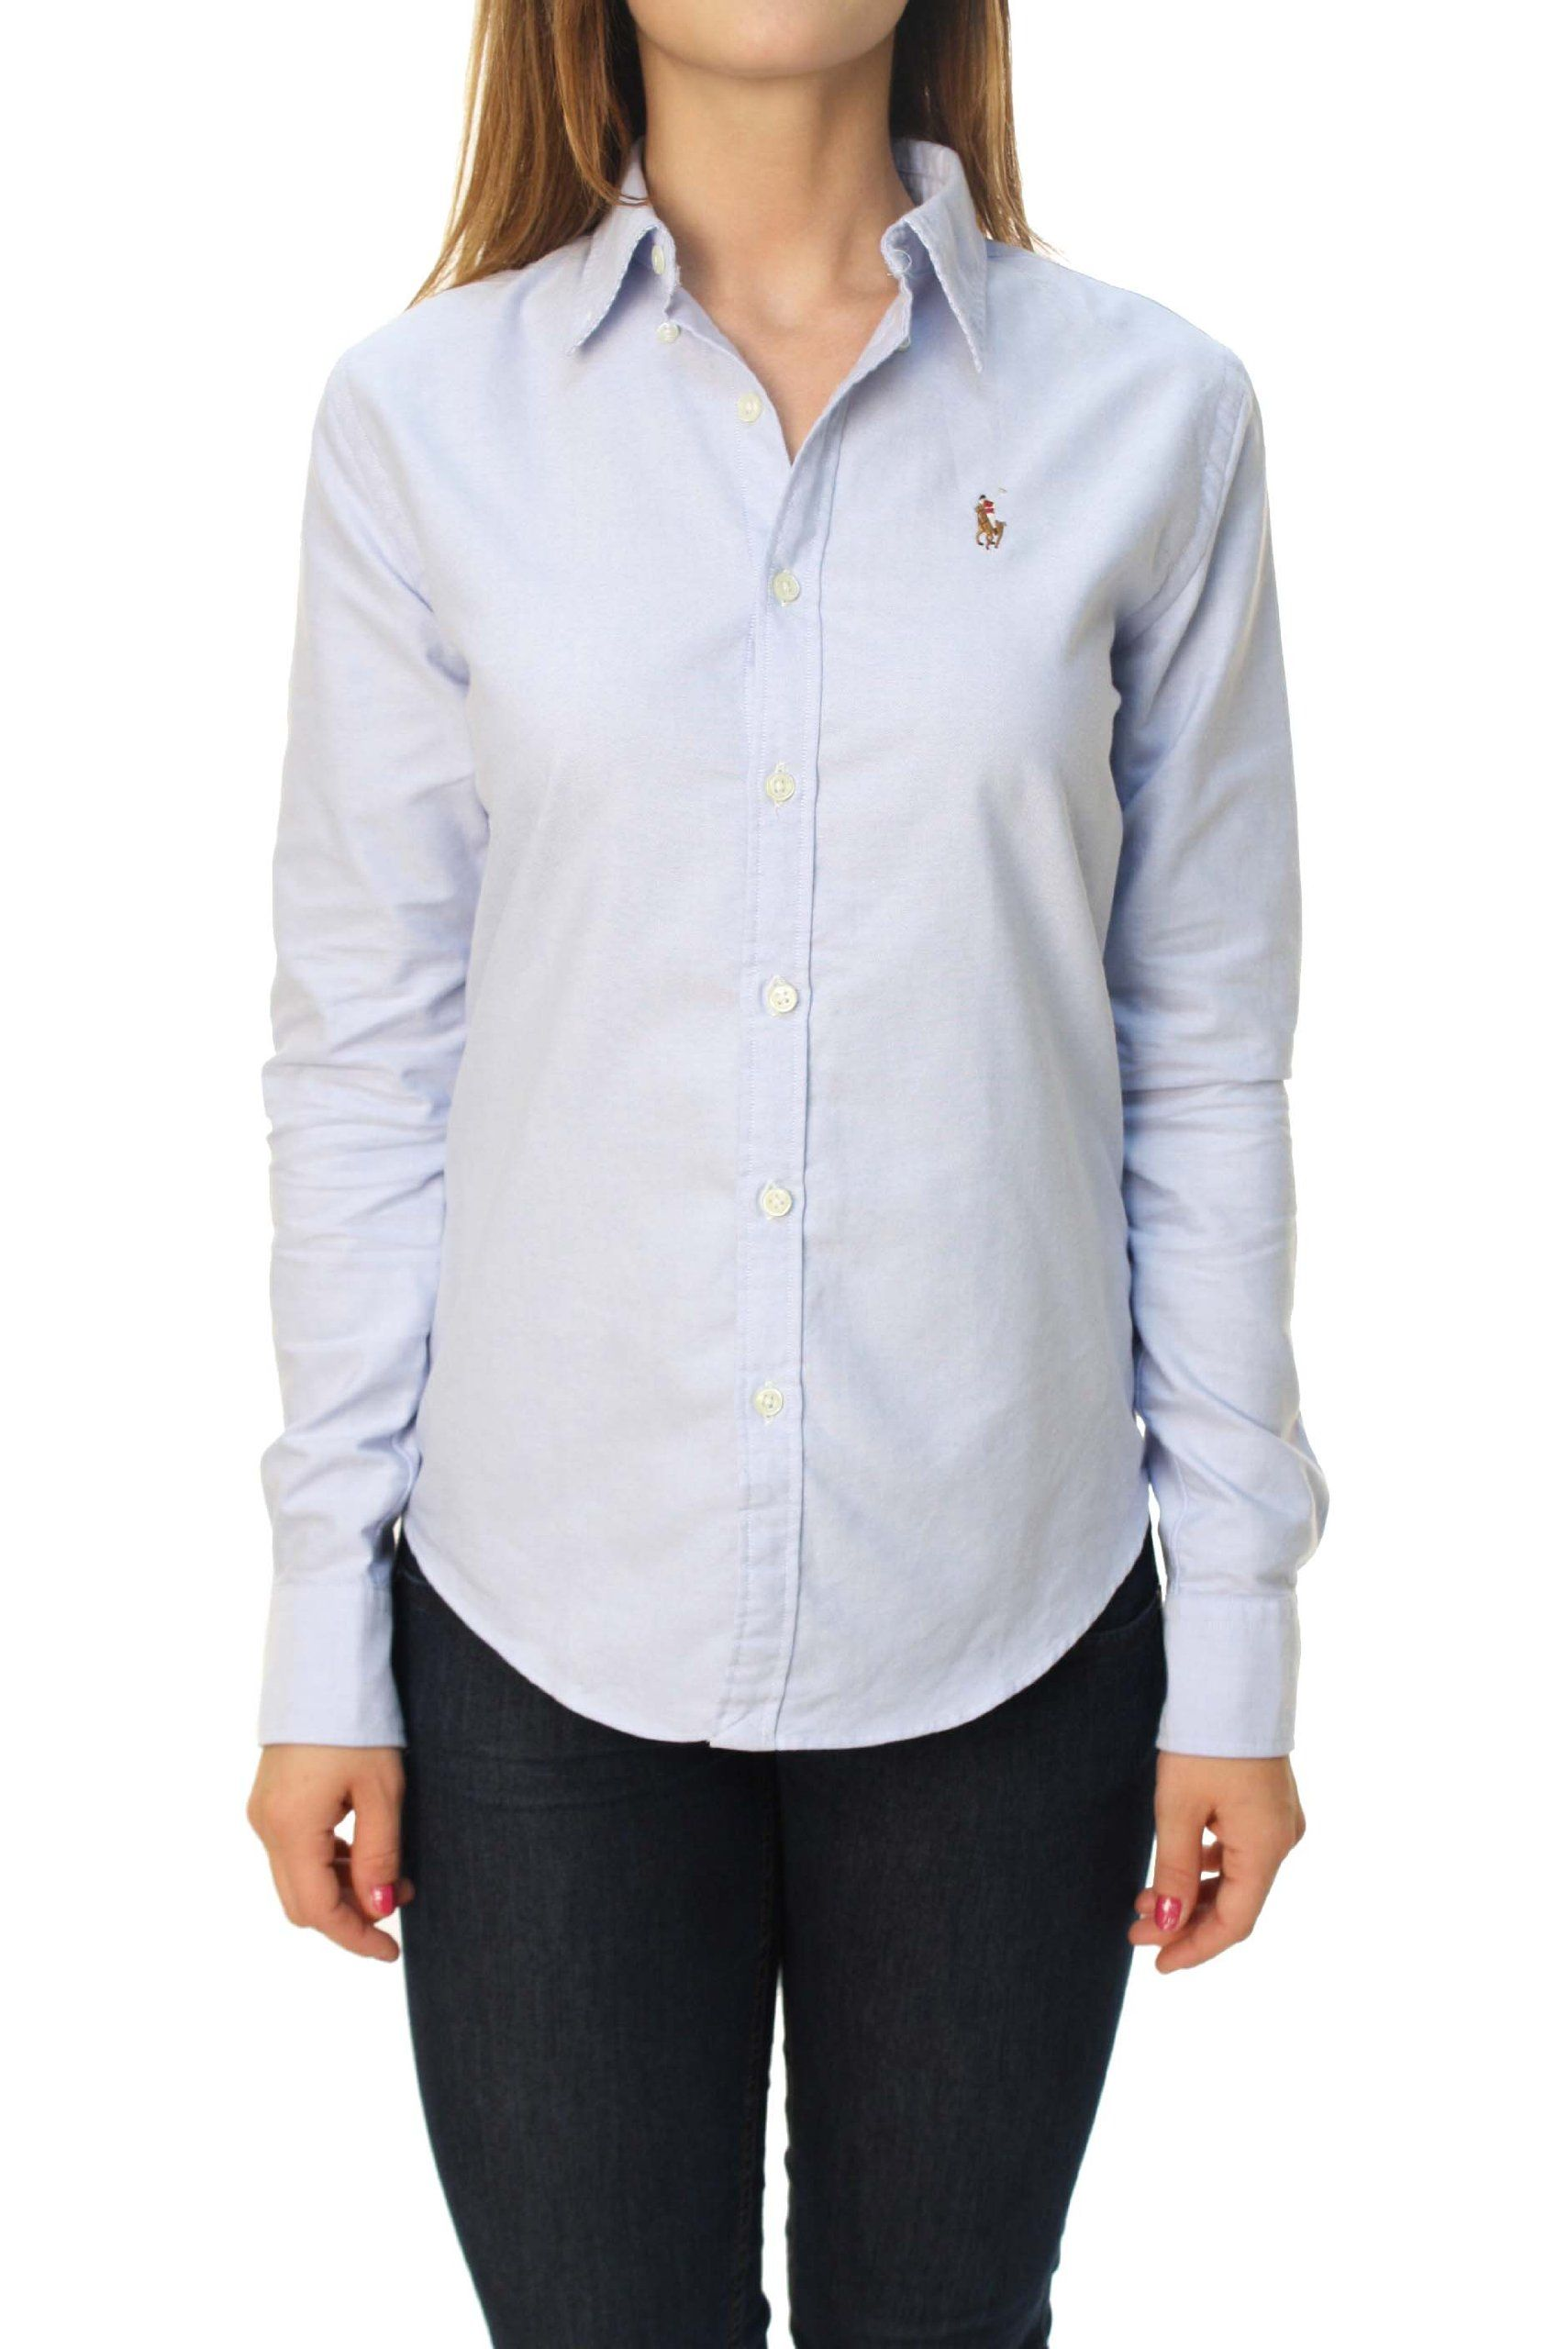 89f7d003d Polo Ralph Lauren Women's Slim Fit Stripe Oxford Button Down Shirt at  Amazon Women's Clothing store: